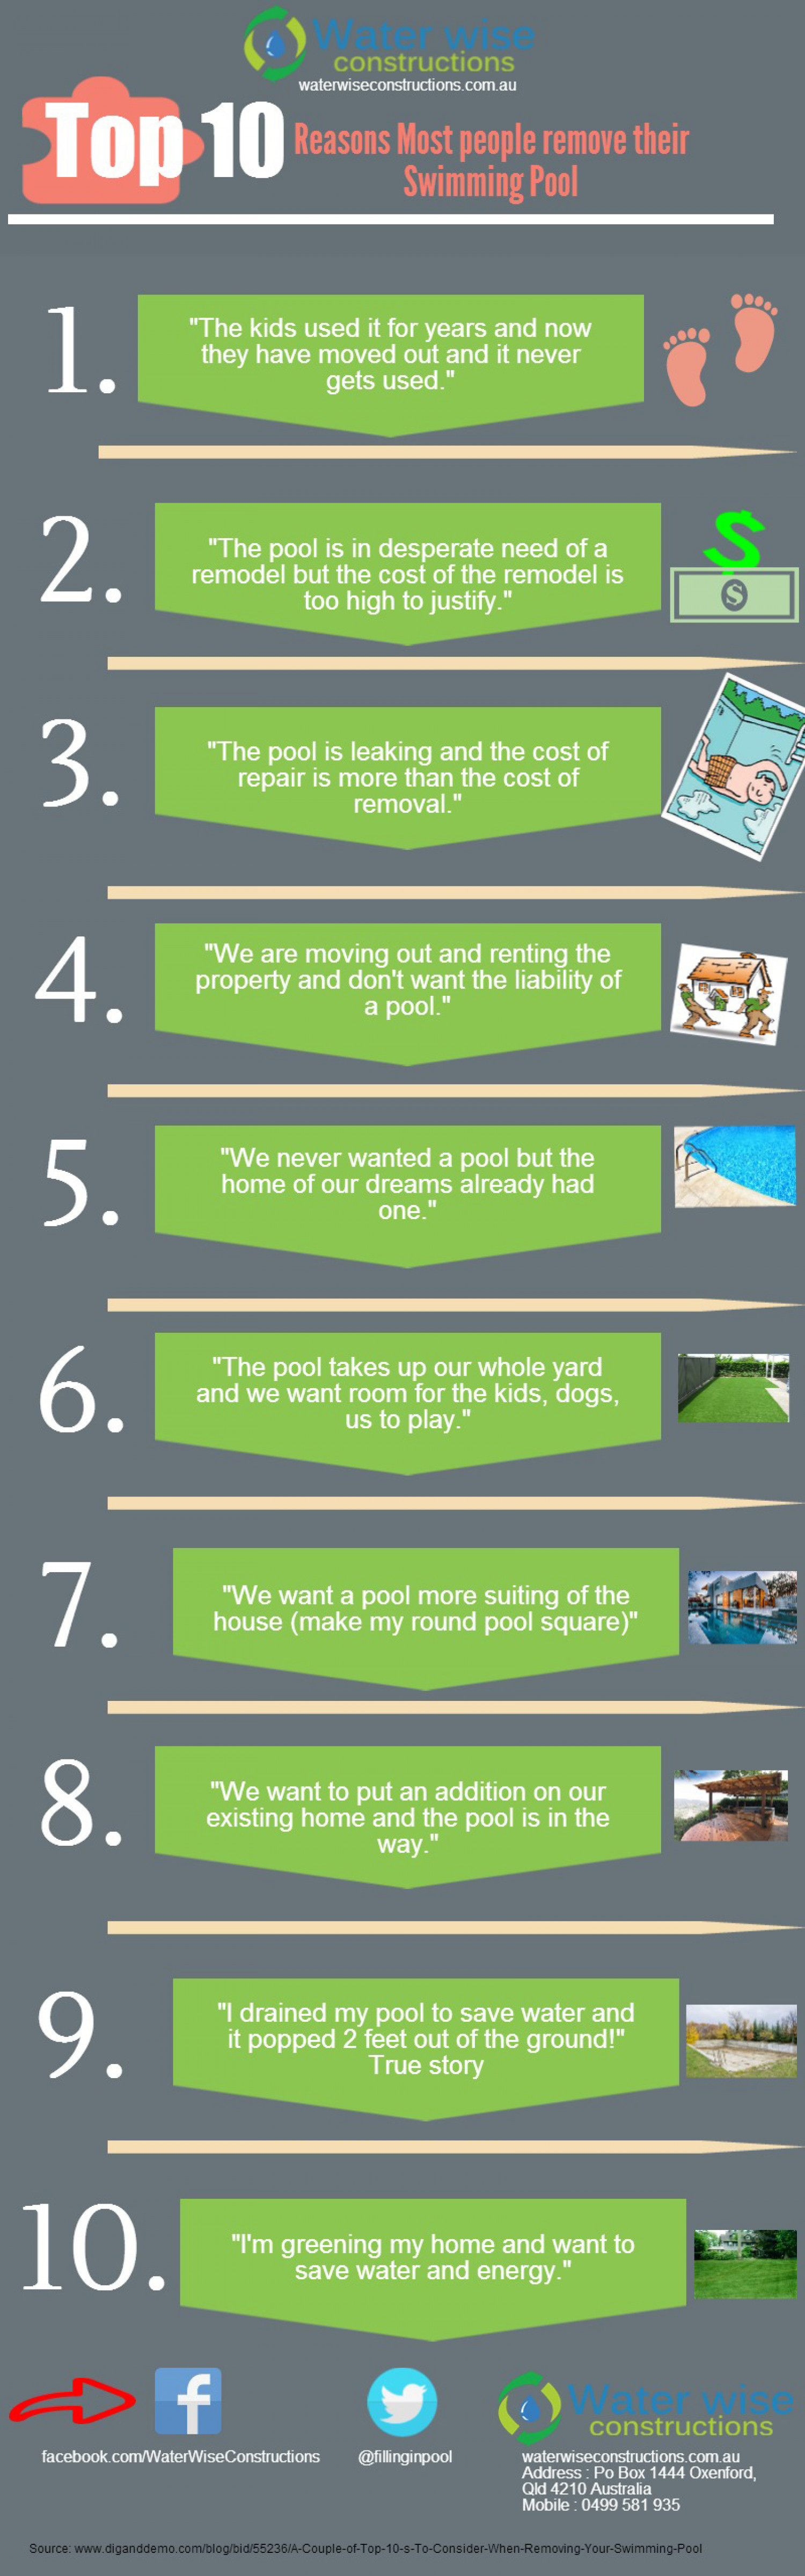 Top 10 Reasons Most People Remove Their Swimming Pool Infographic